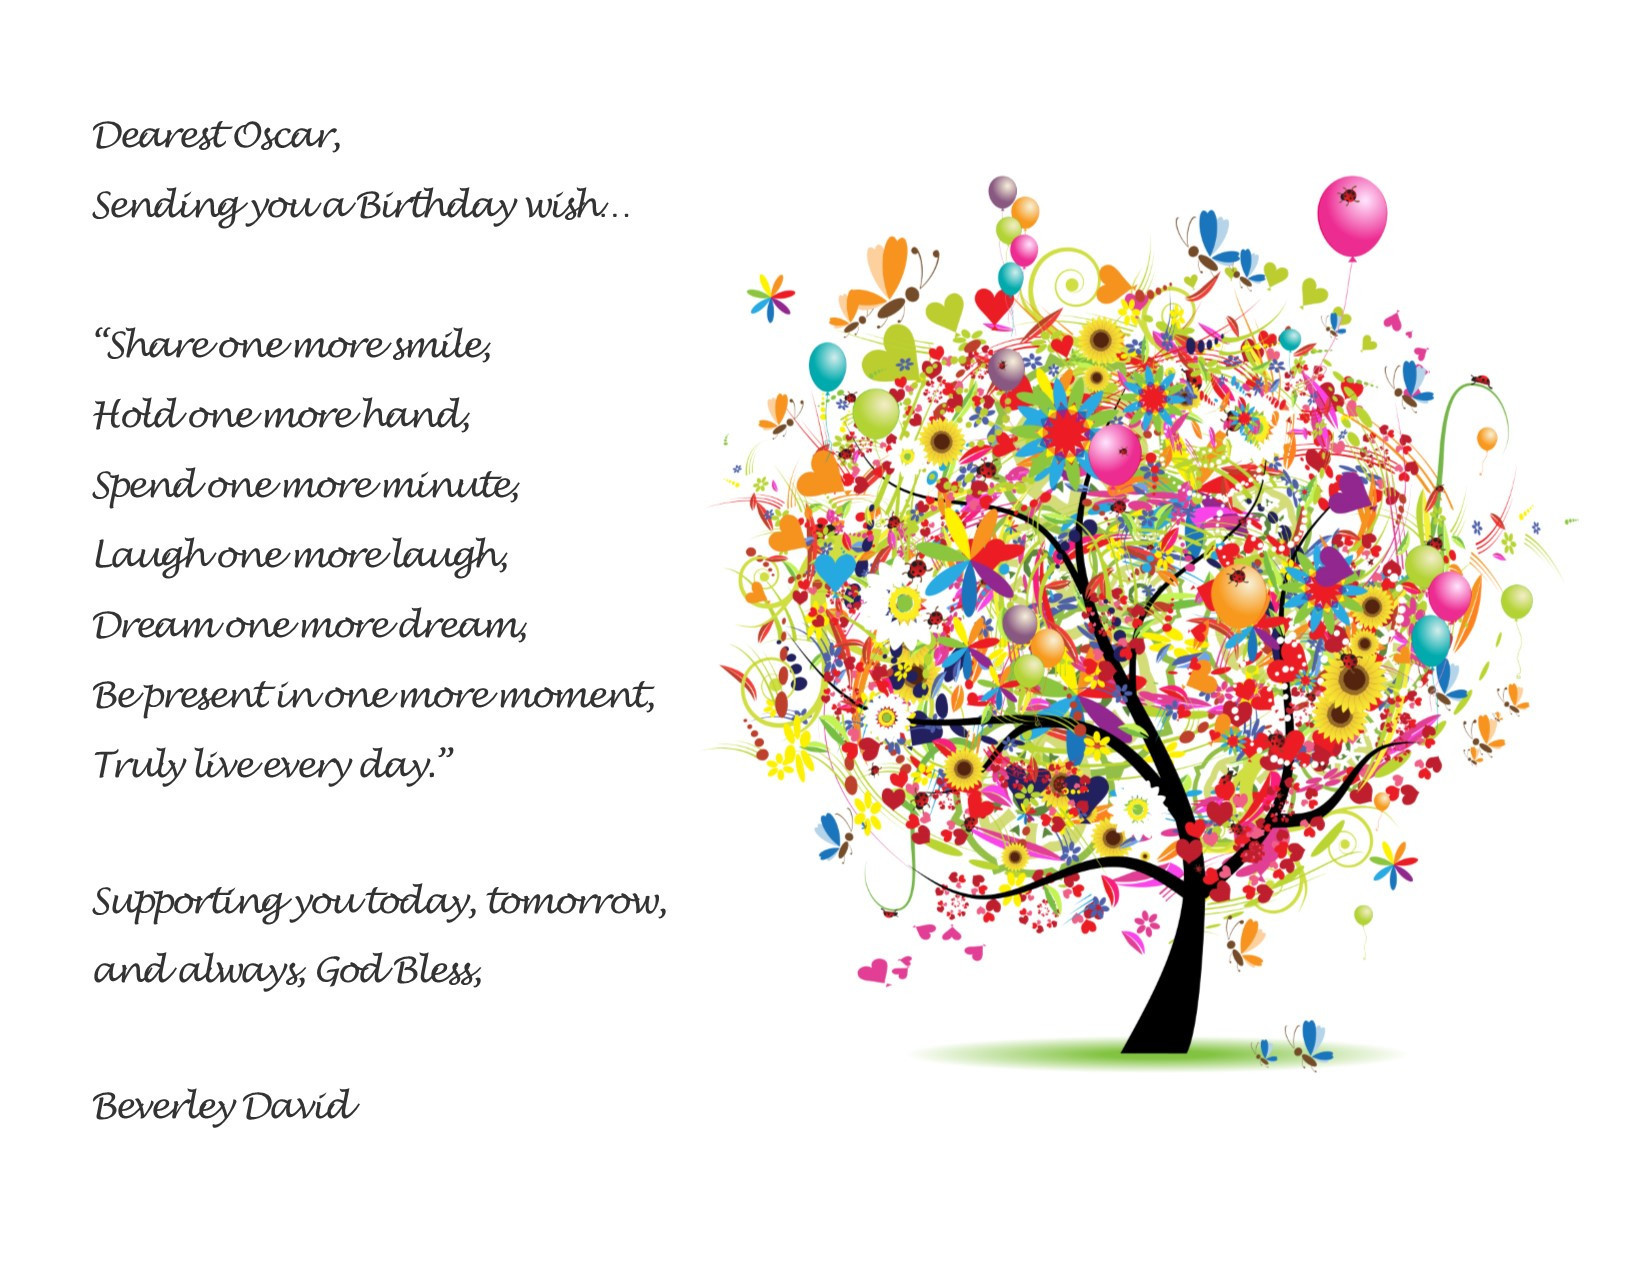 Best ideas about Birthday Wishes For Me . Save or Pin Birthday Wishes Sending you a Birthday wish Now.